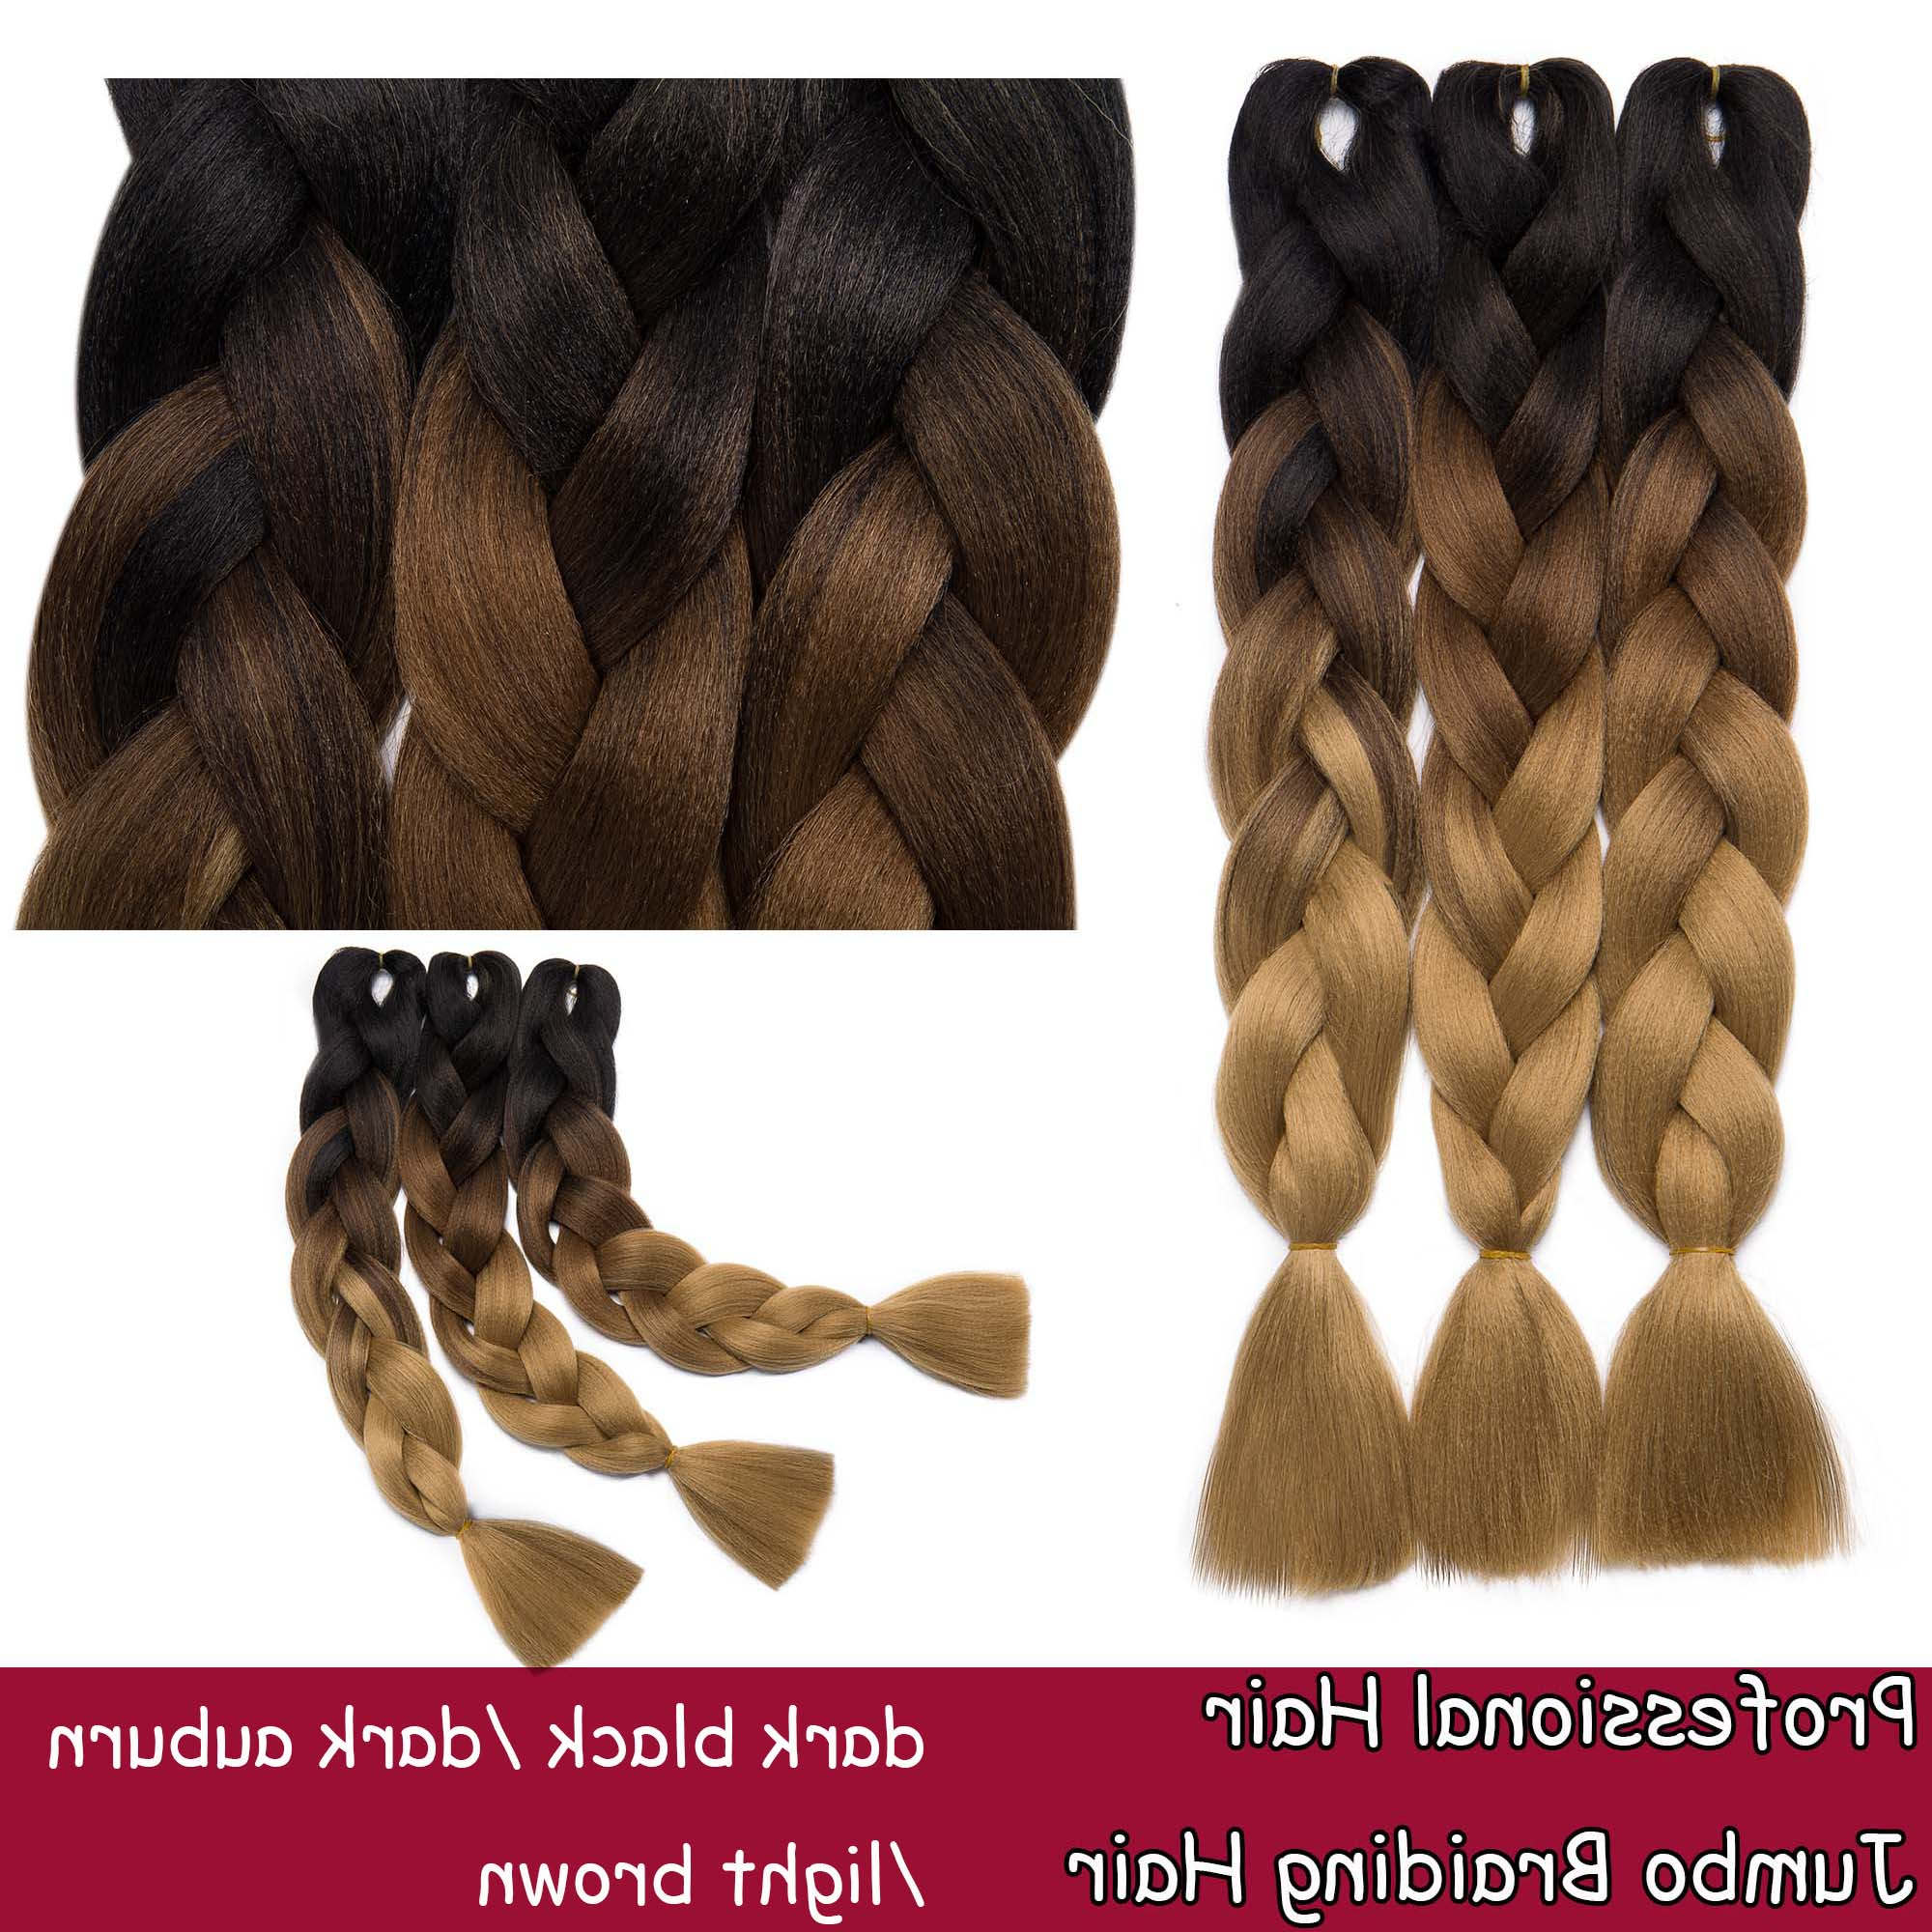 S Noilite 24 Inches 5pcs/lot Ombre Braiding Hair Synthetic Braiding Hair Two Tone Ombre Jumbo Braids Hair Extensions Twist Crochet Hair Dark Pertaining To Most Popular Light Brown Braid Hairstyles (View 10 of 20)